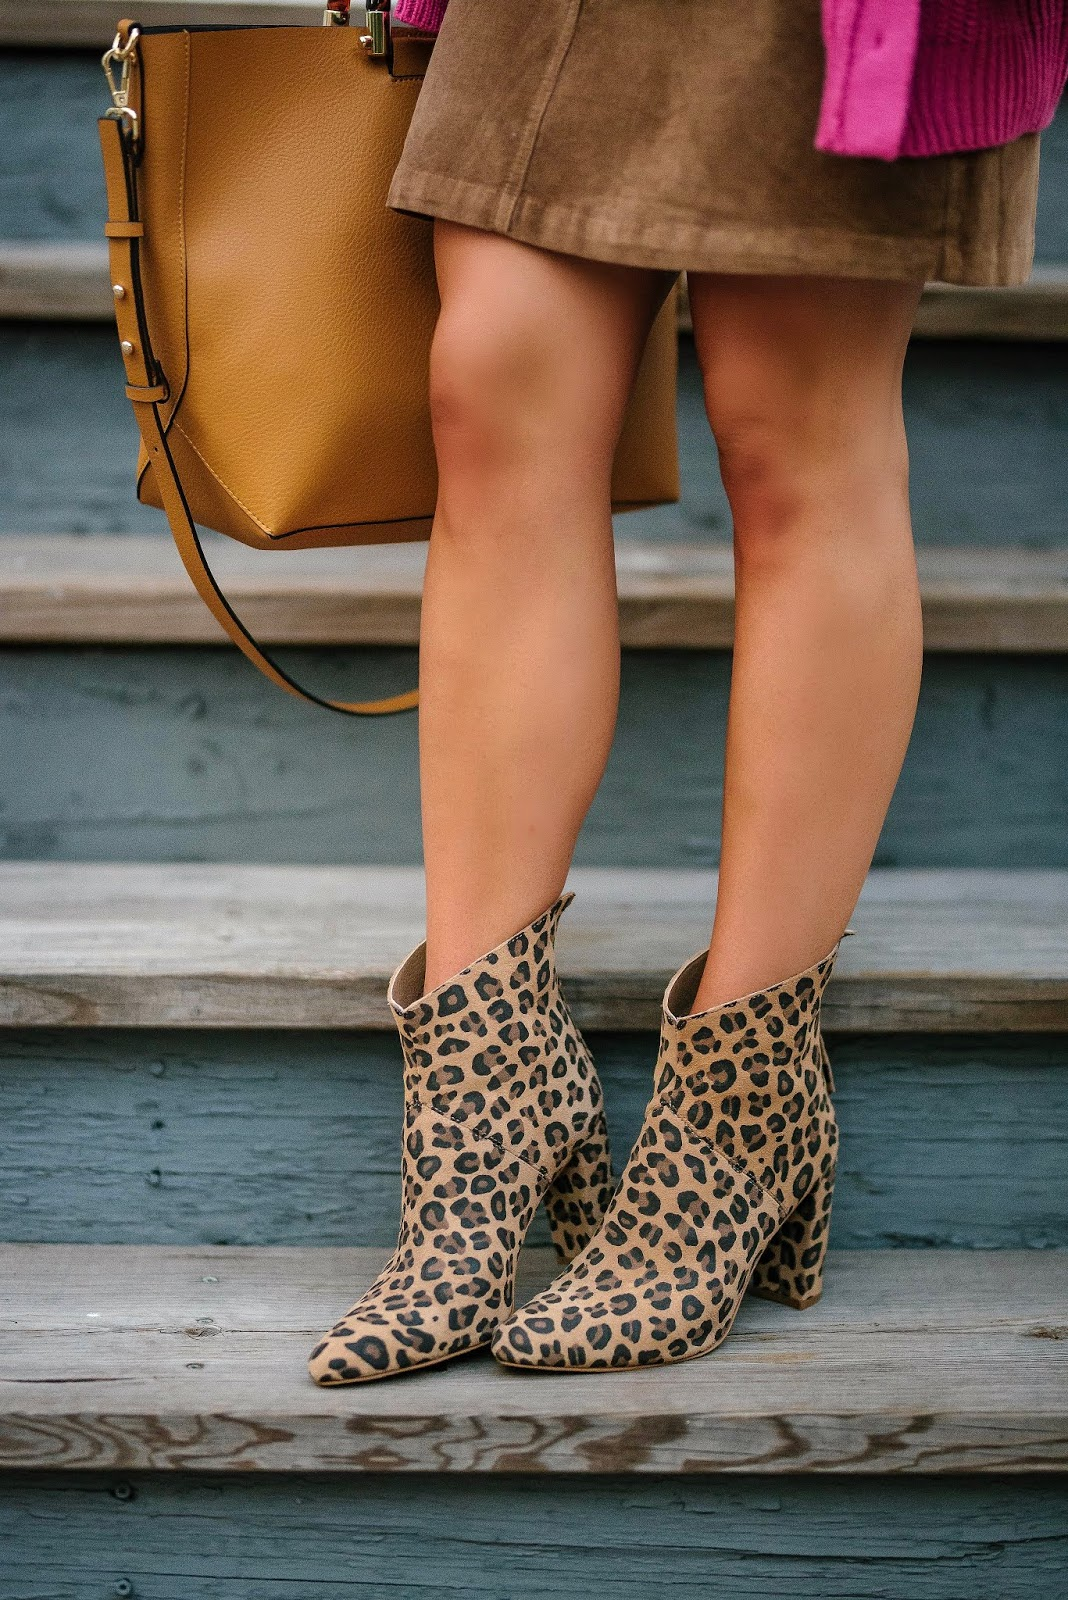 Fall Style: Matisse Tinsel Leopard Booties - Something Delightful Blog